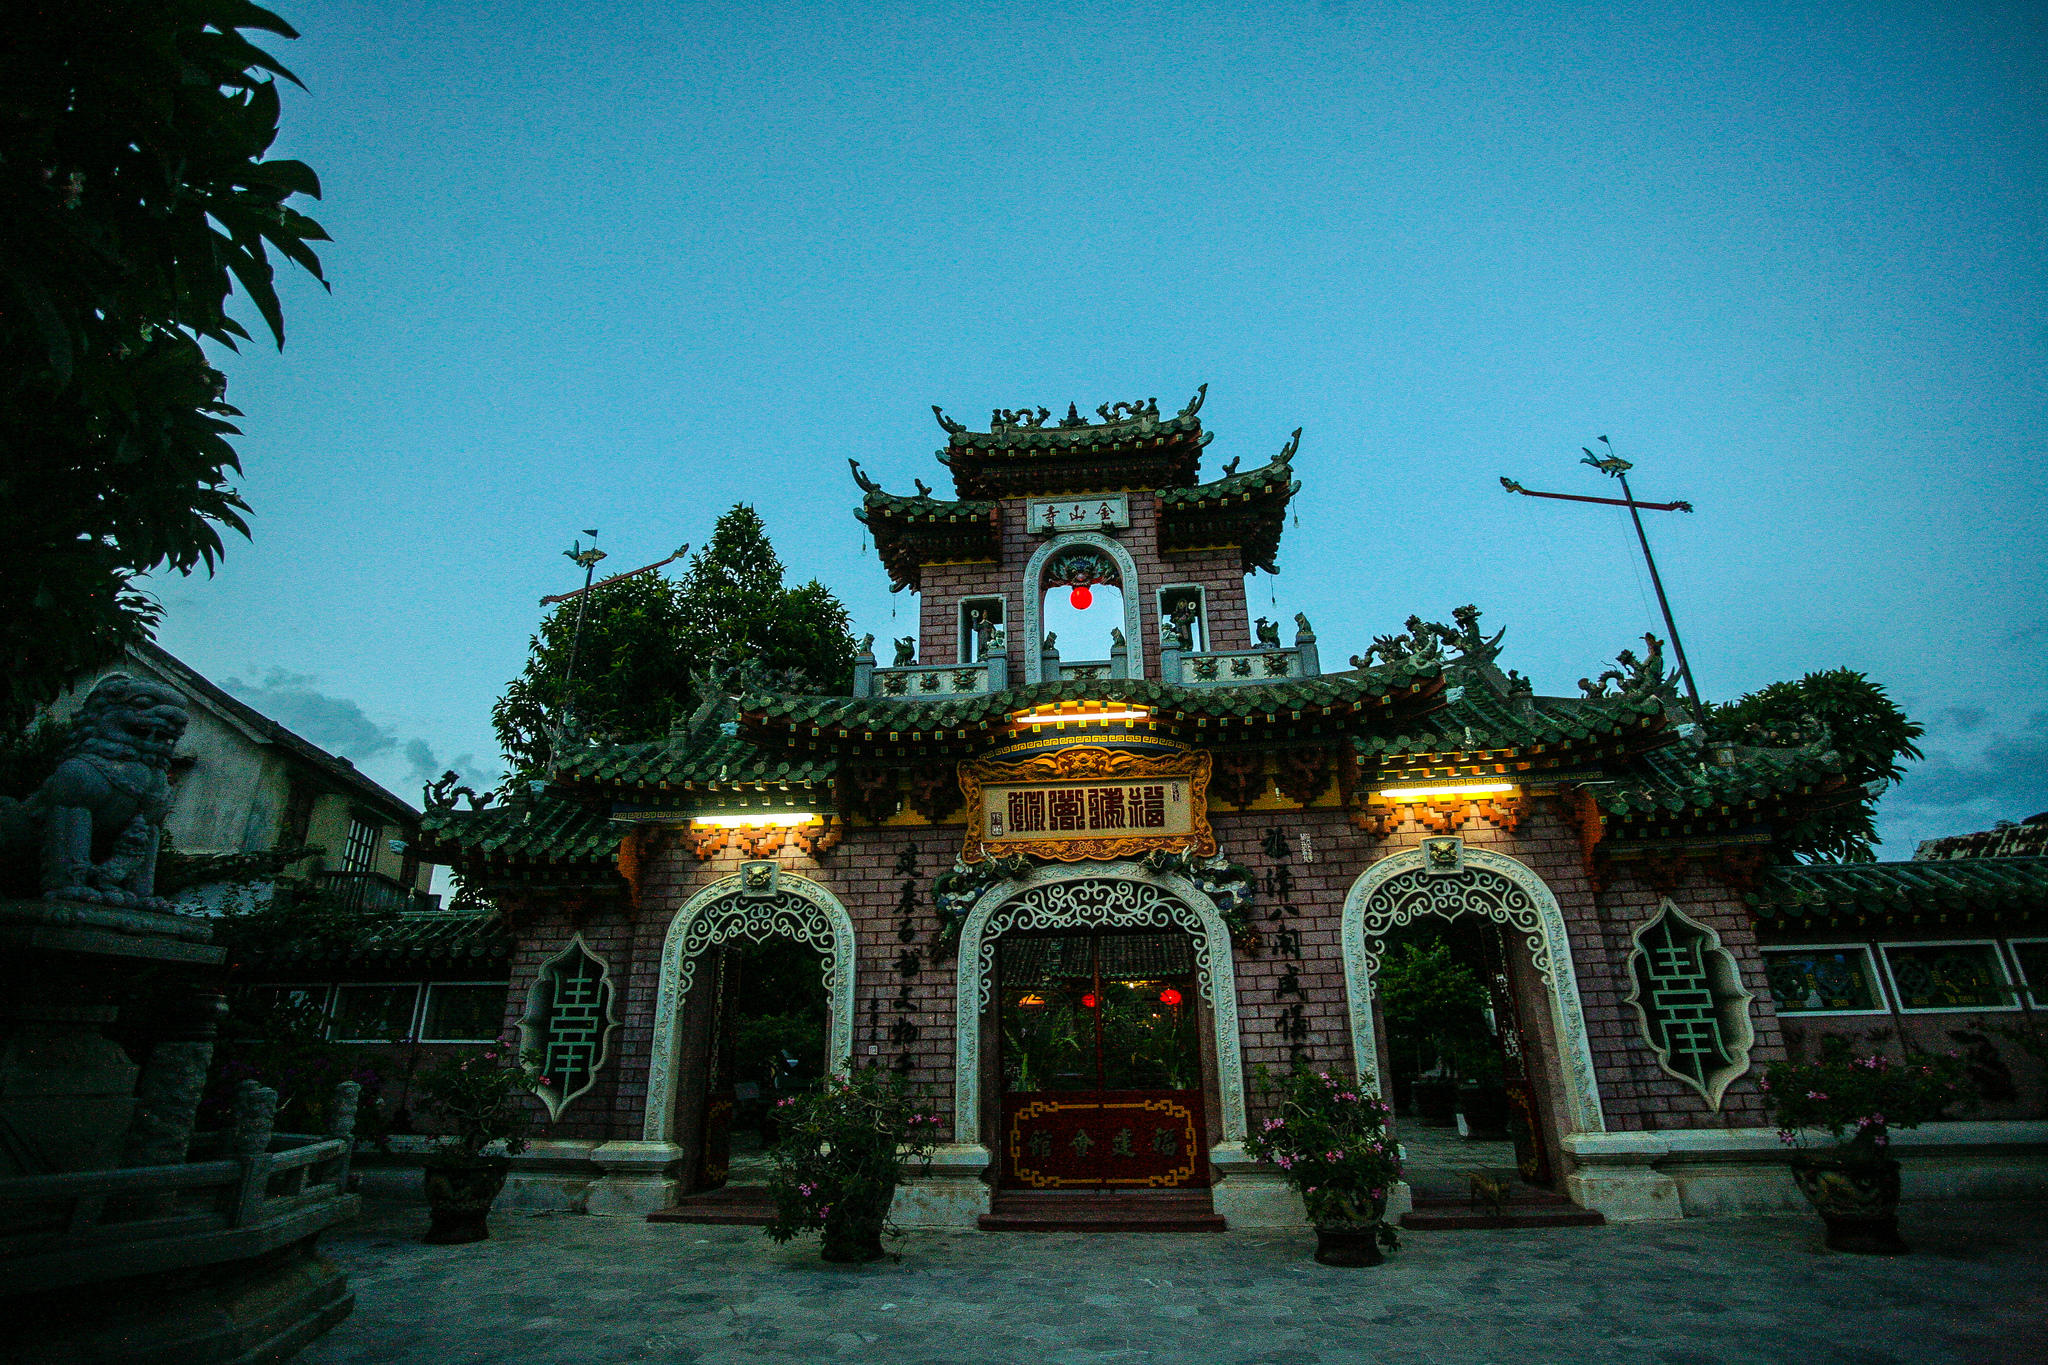 Night view of Phuoc Kien Assembly Hall, Vietnam